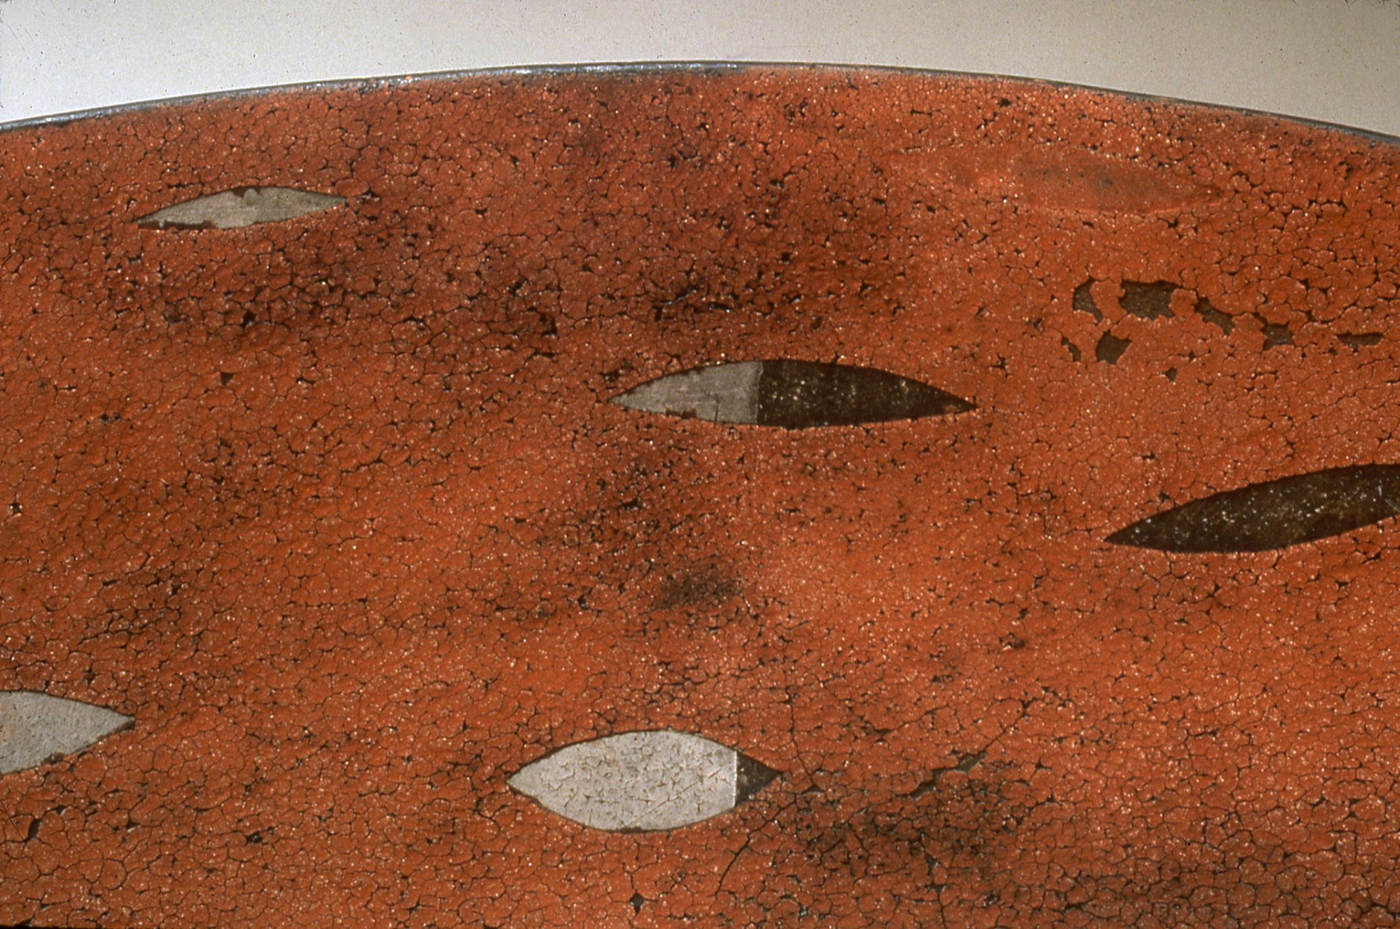 Untitled bowl, 1997 (detail)